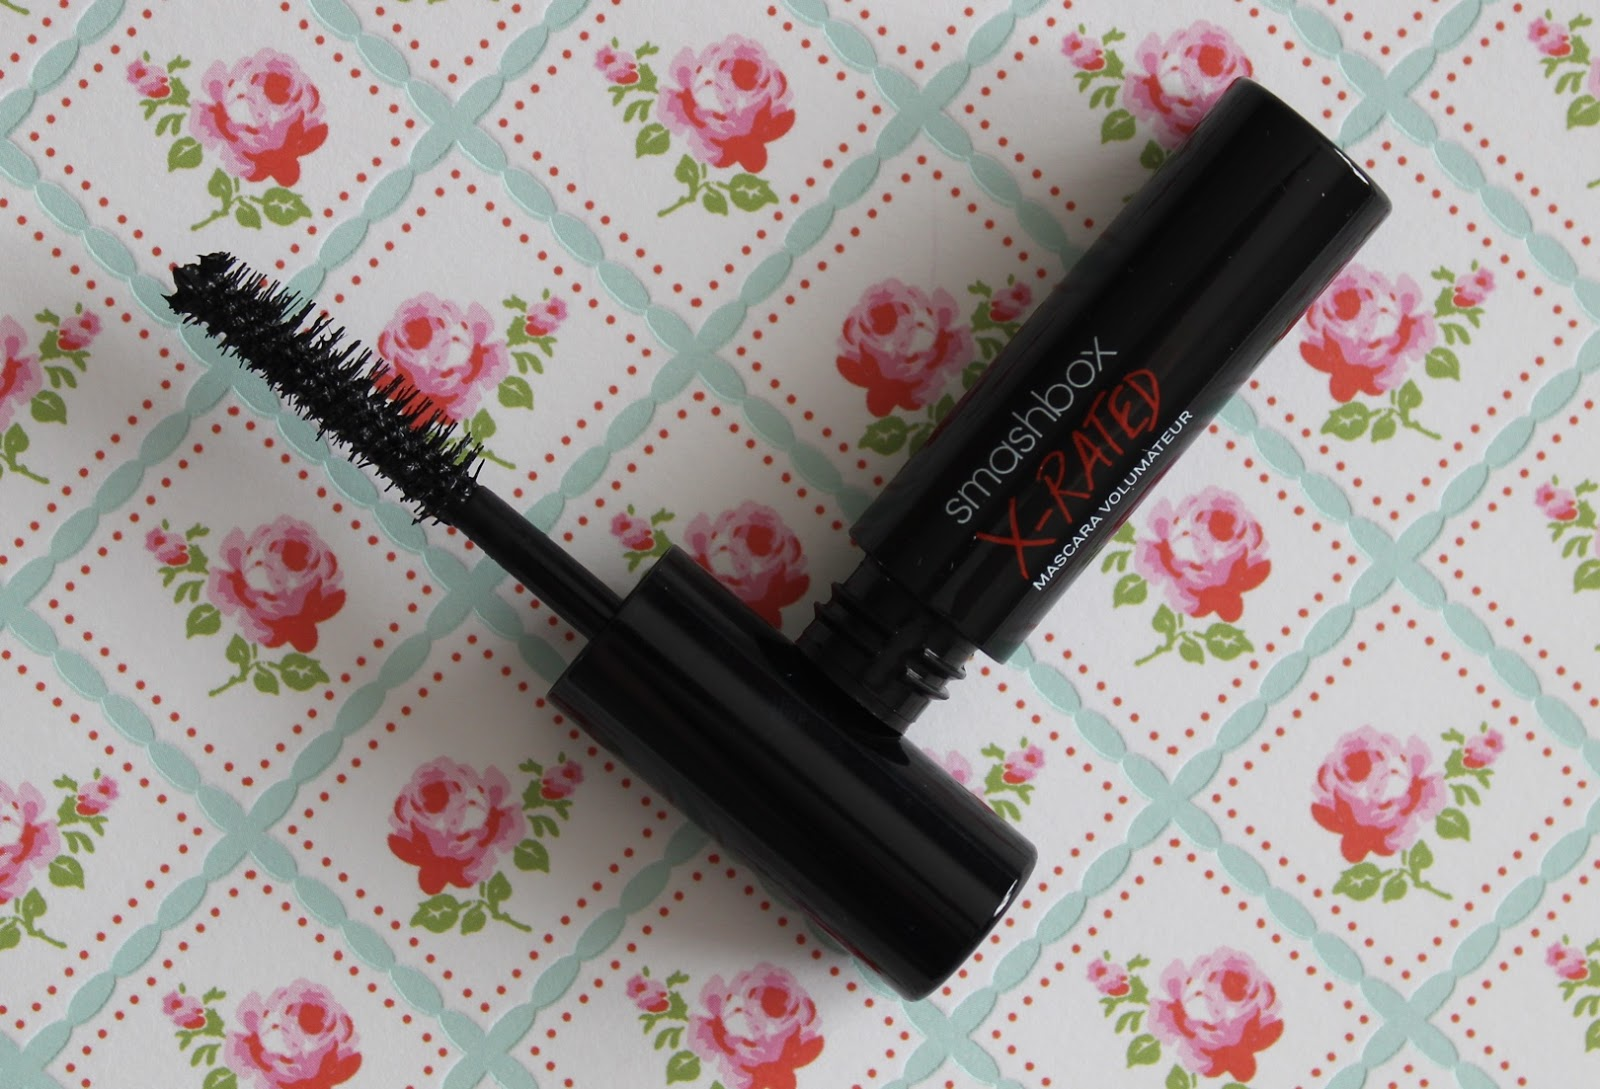 Smashbox x-rated mascara review